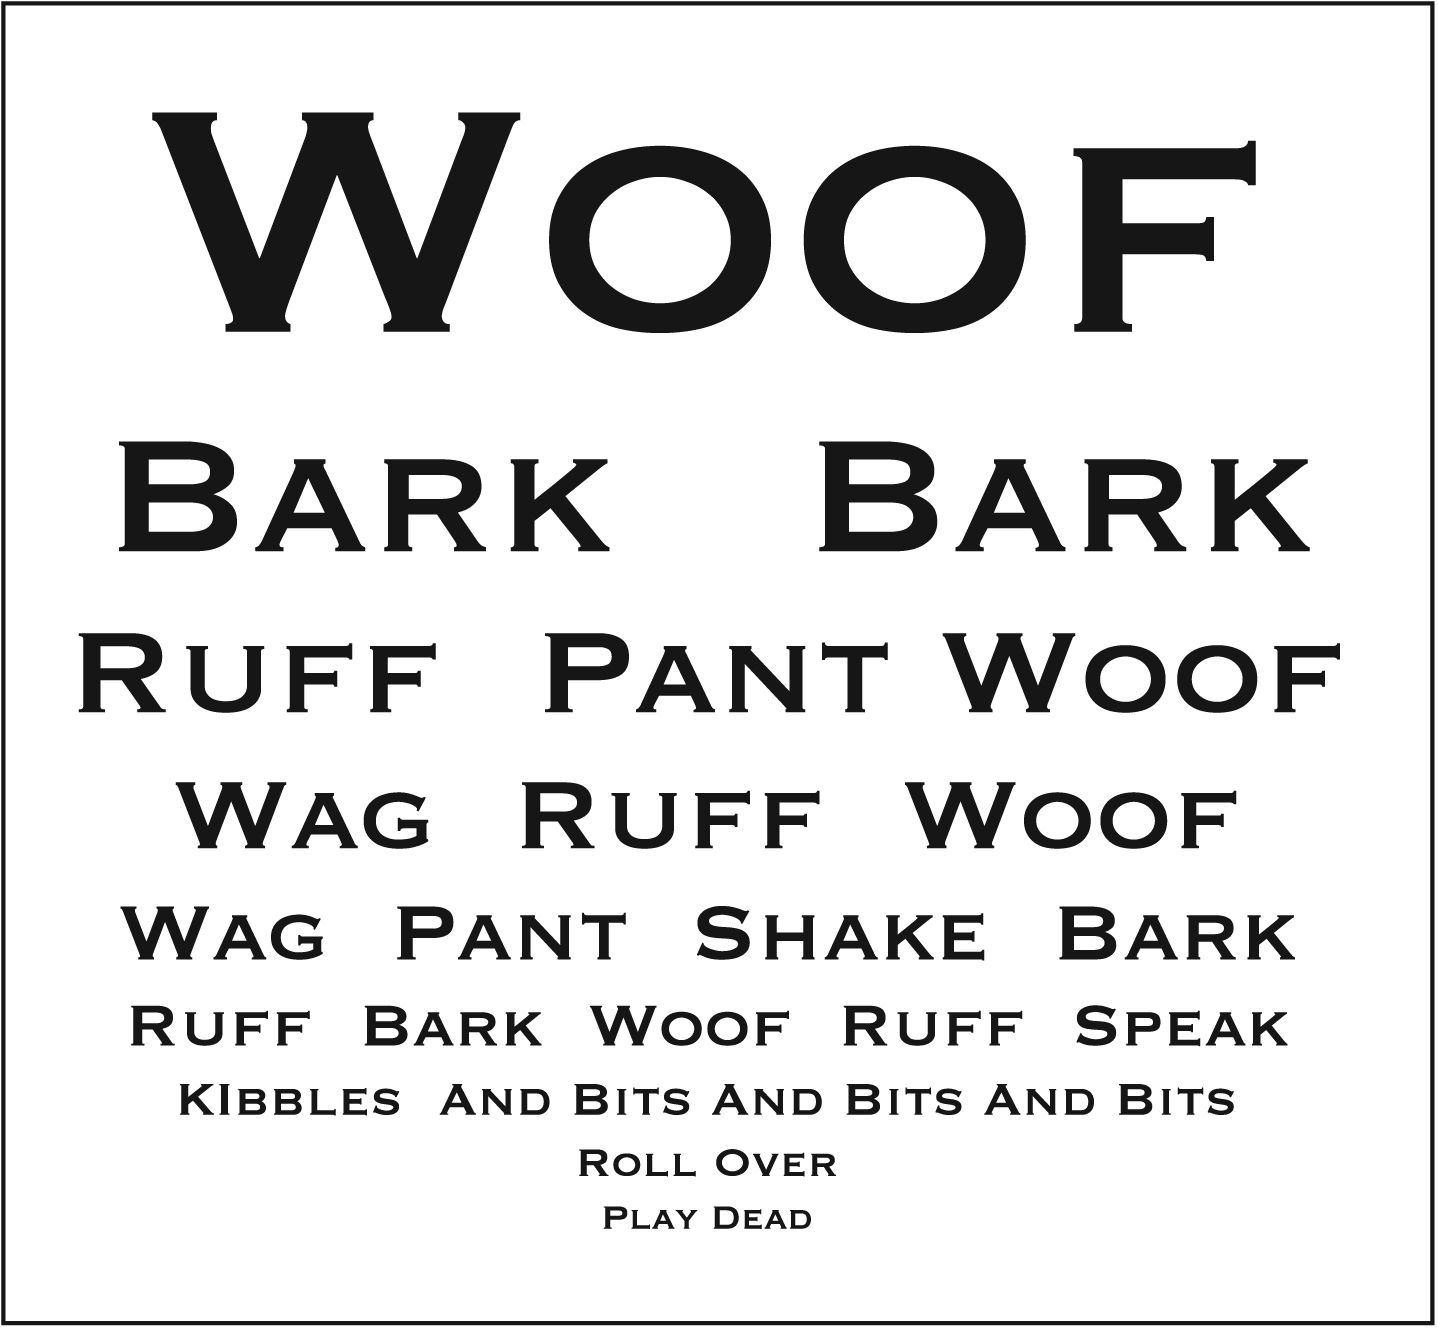 Eye chart for dogs eye charts pinterest chart and dog eye chart for dogs geenschuldenfo Gallery